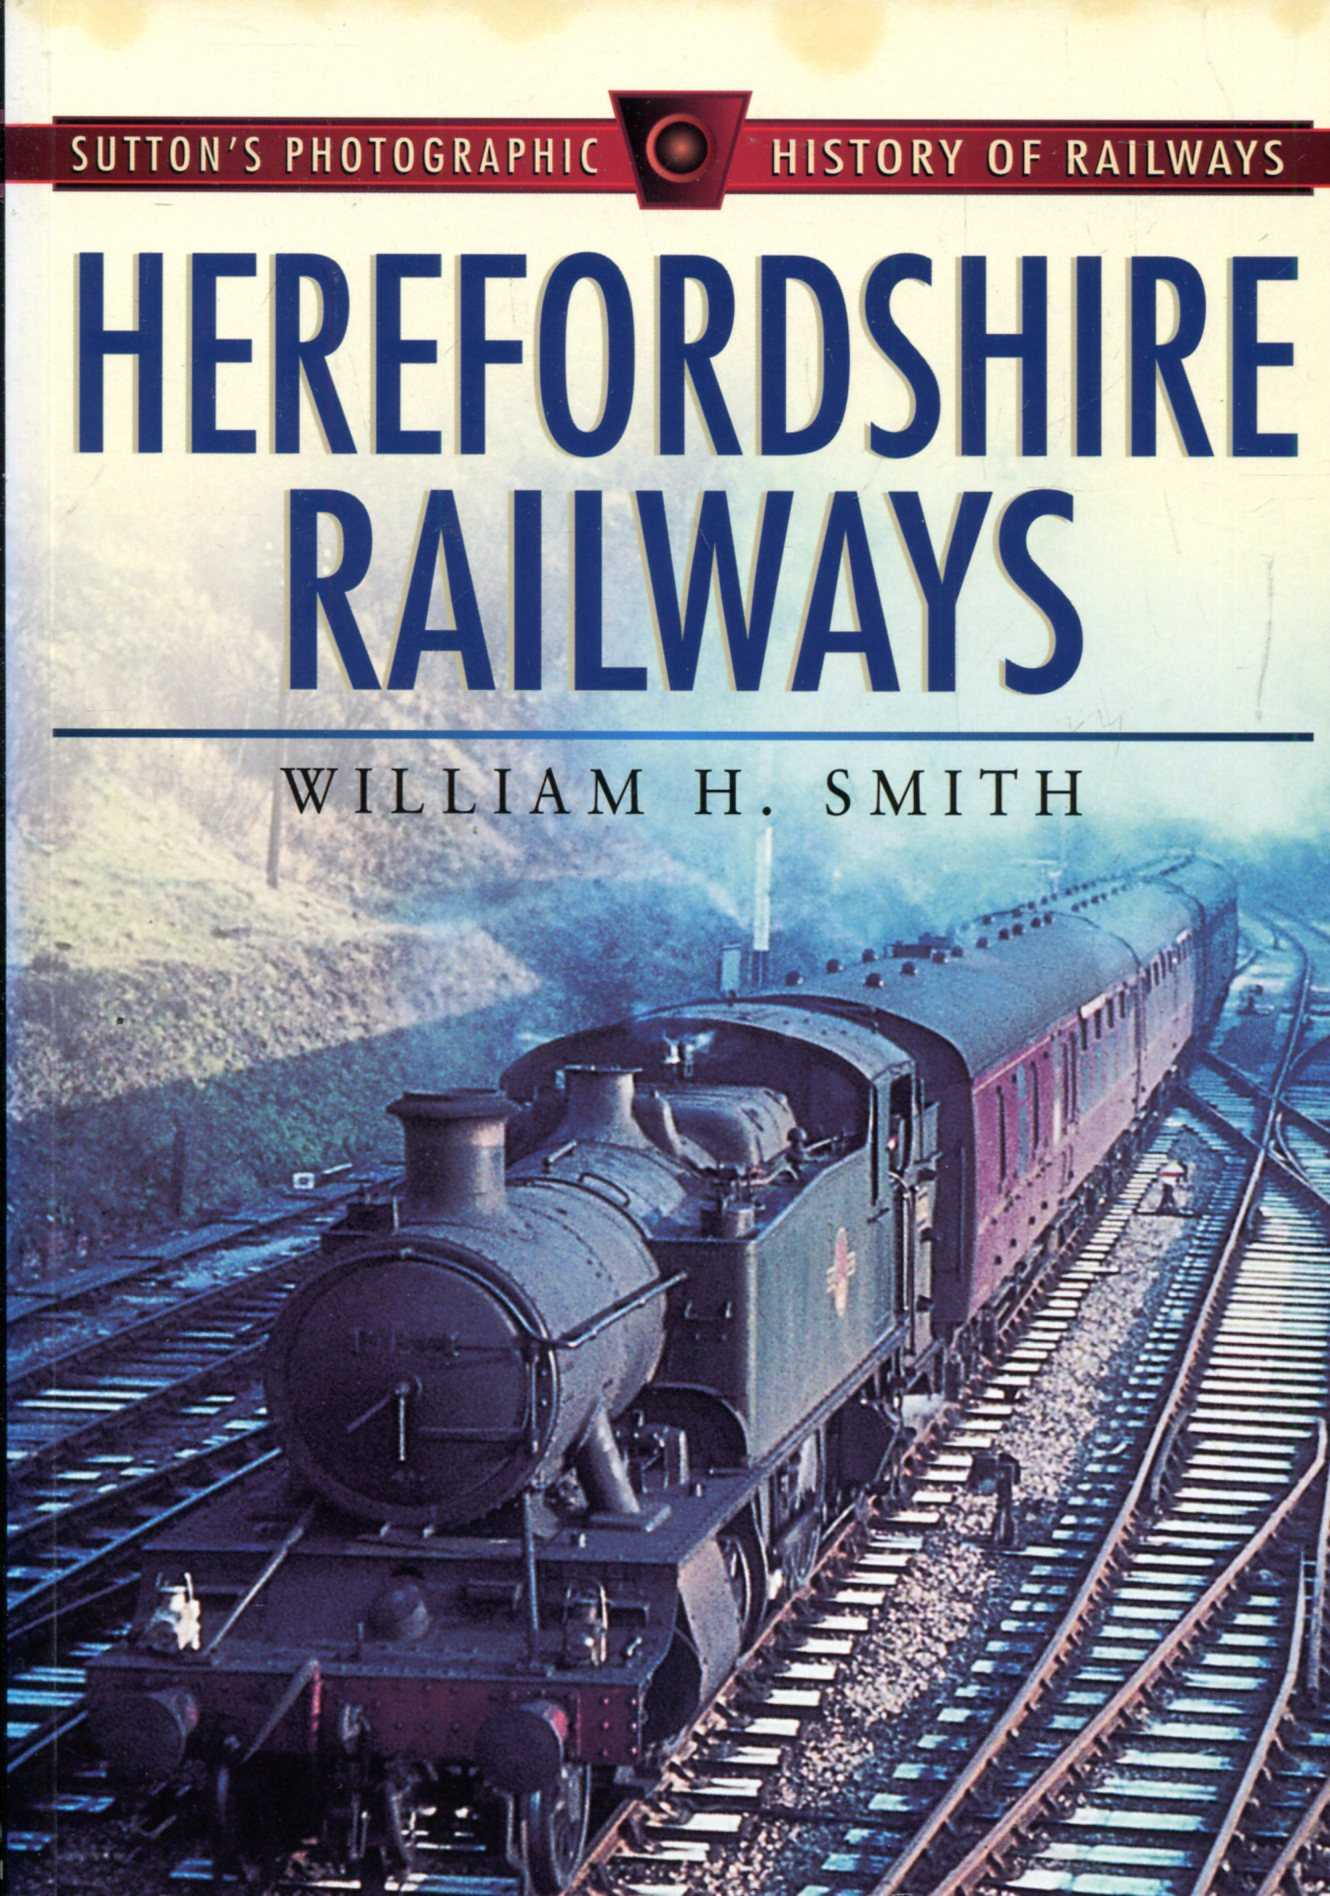 Image for Herefordshire Railways (Sutton's Photographic History of Railways)